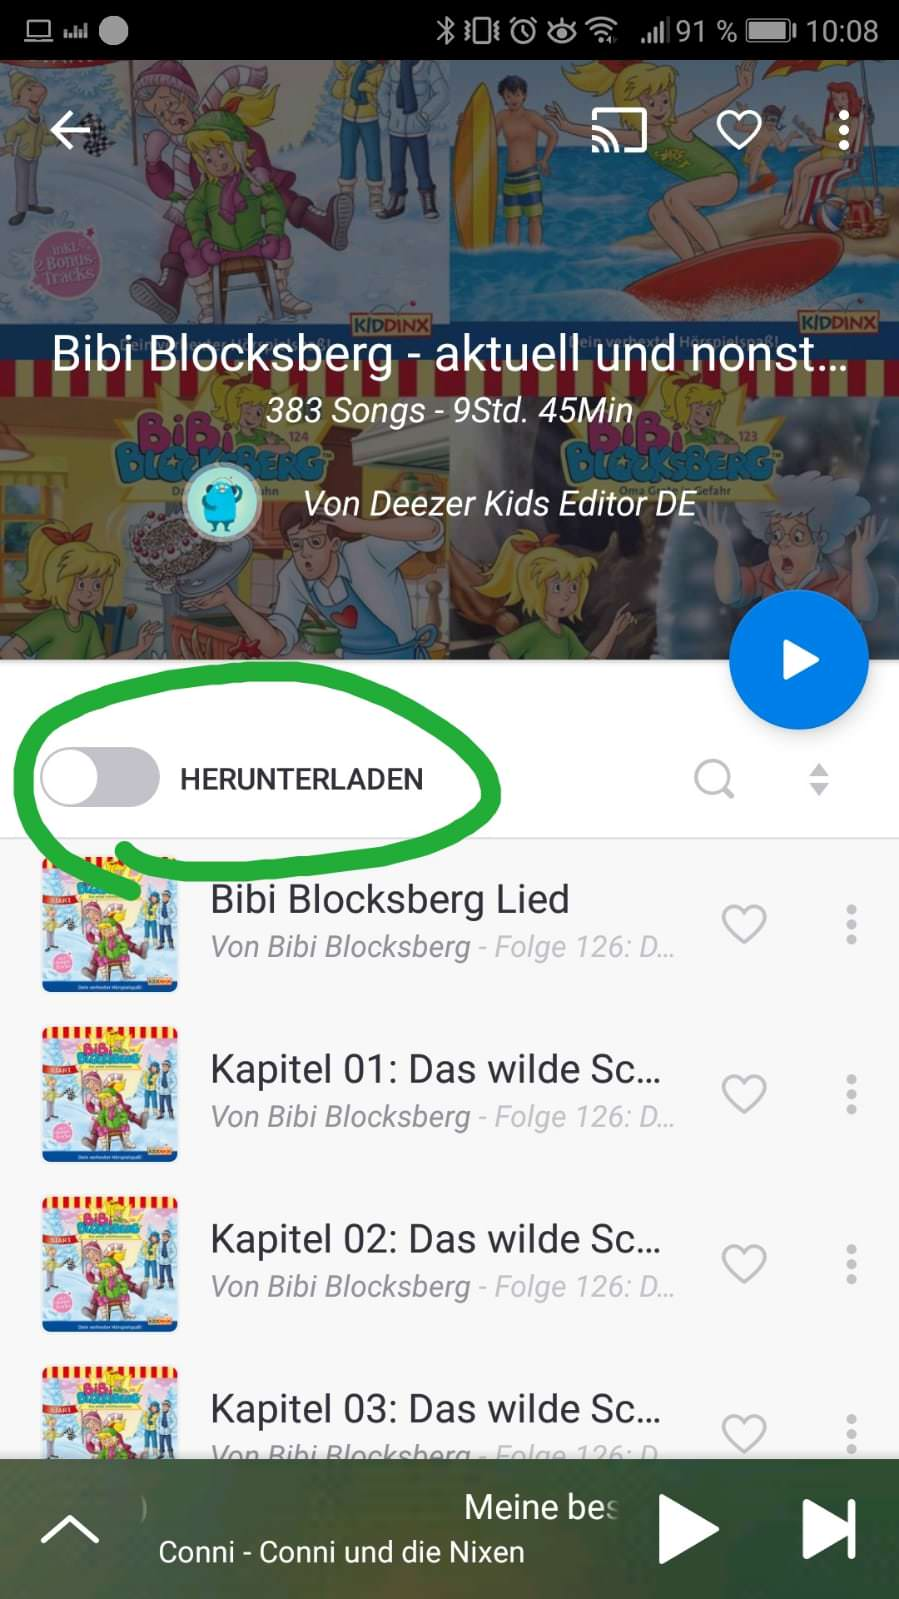 Deezer Family auf Reisen - Herunterladen Button in Playlist